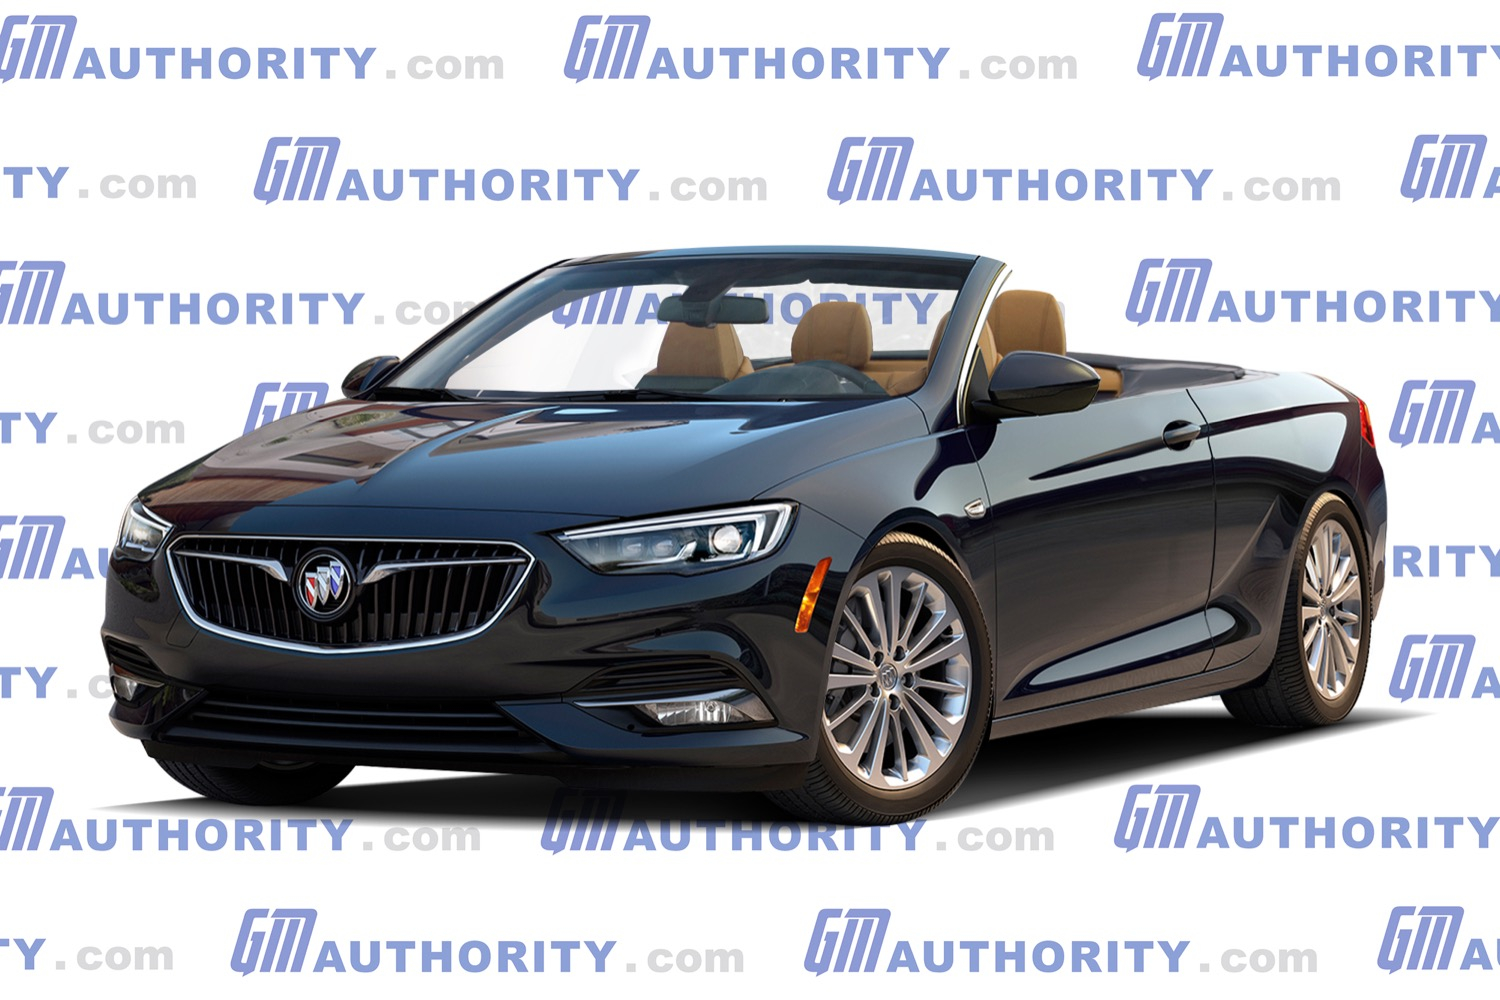 Buick Regal Convertible Rendered | Gm Authority New 2021 Buick Cascada Awd, Build And Price, Engine